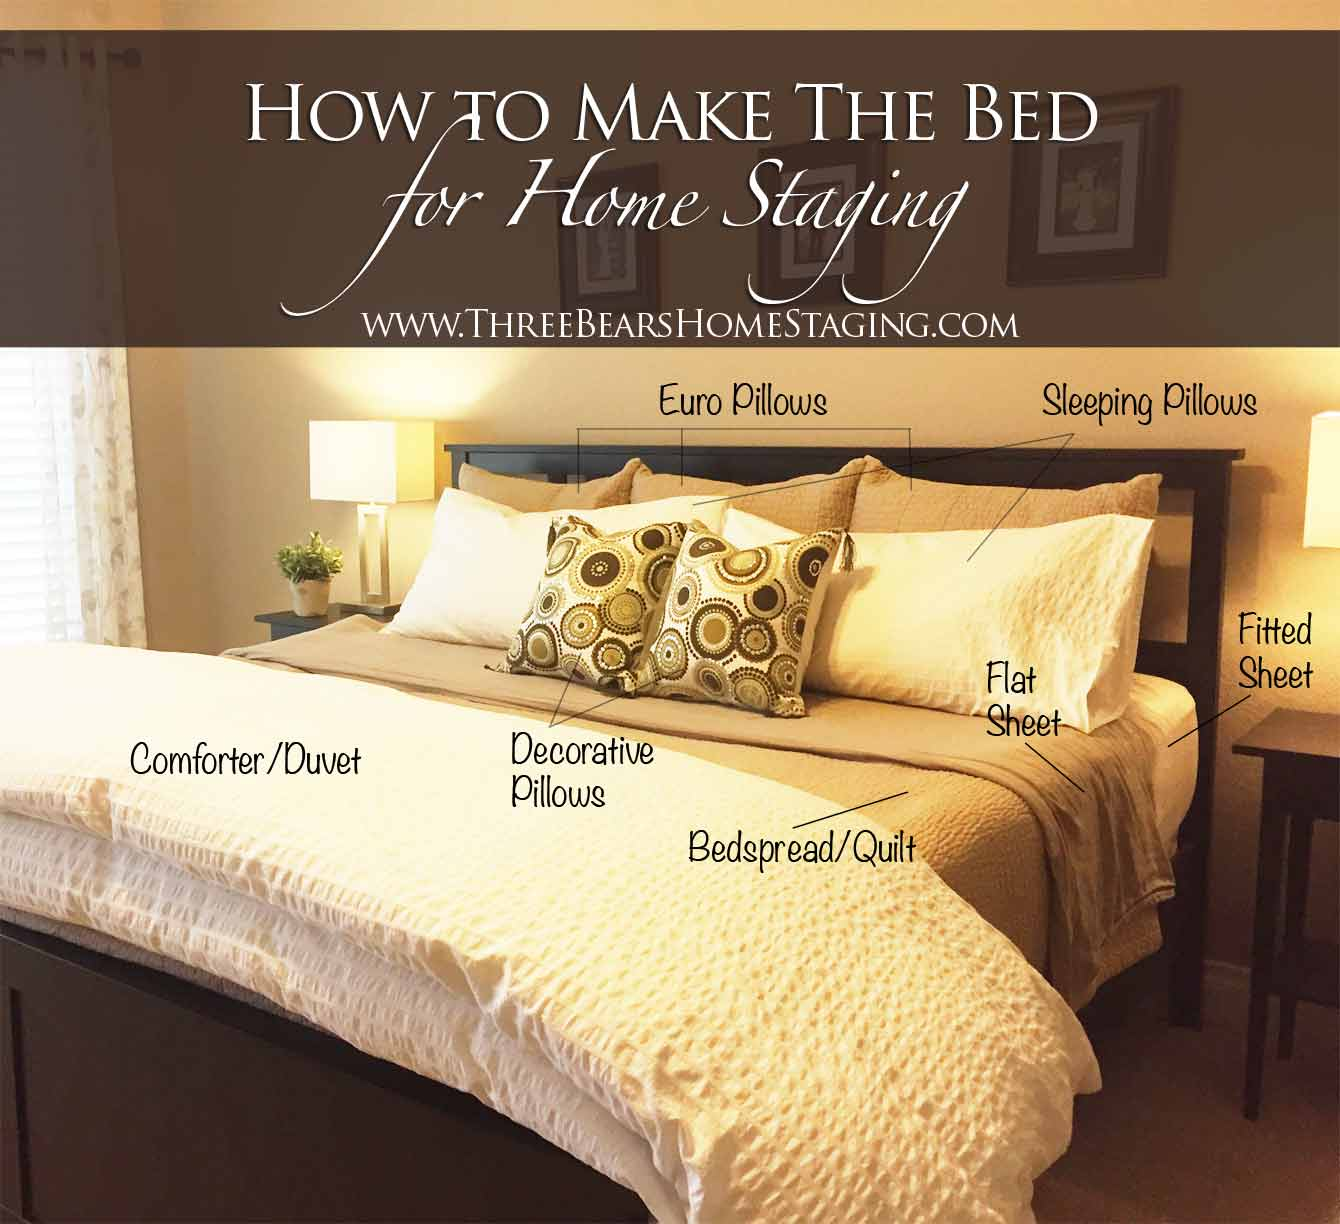 staging a bedroom. How to Make the Bed for Home Staging bedroom staging  Three Bears